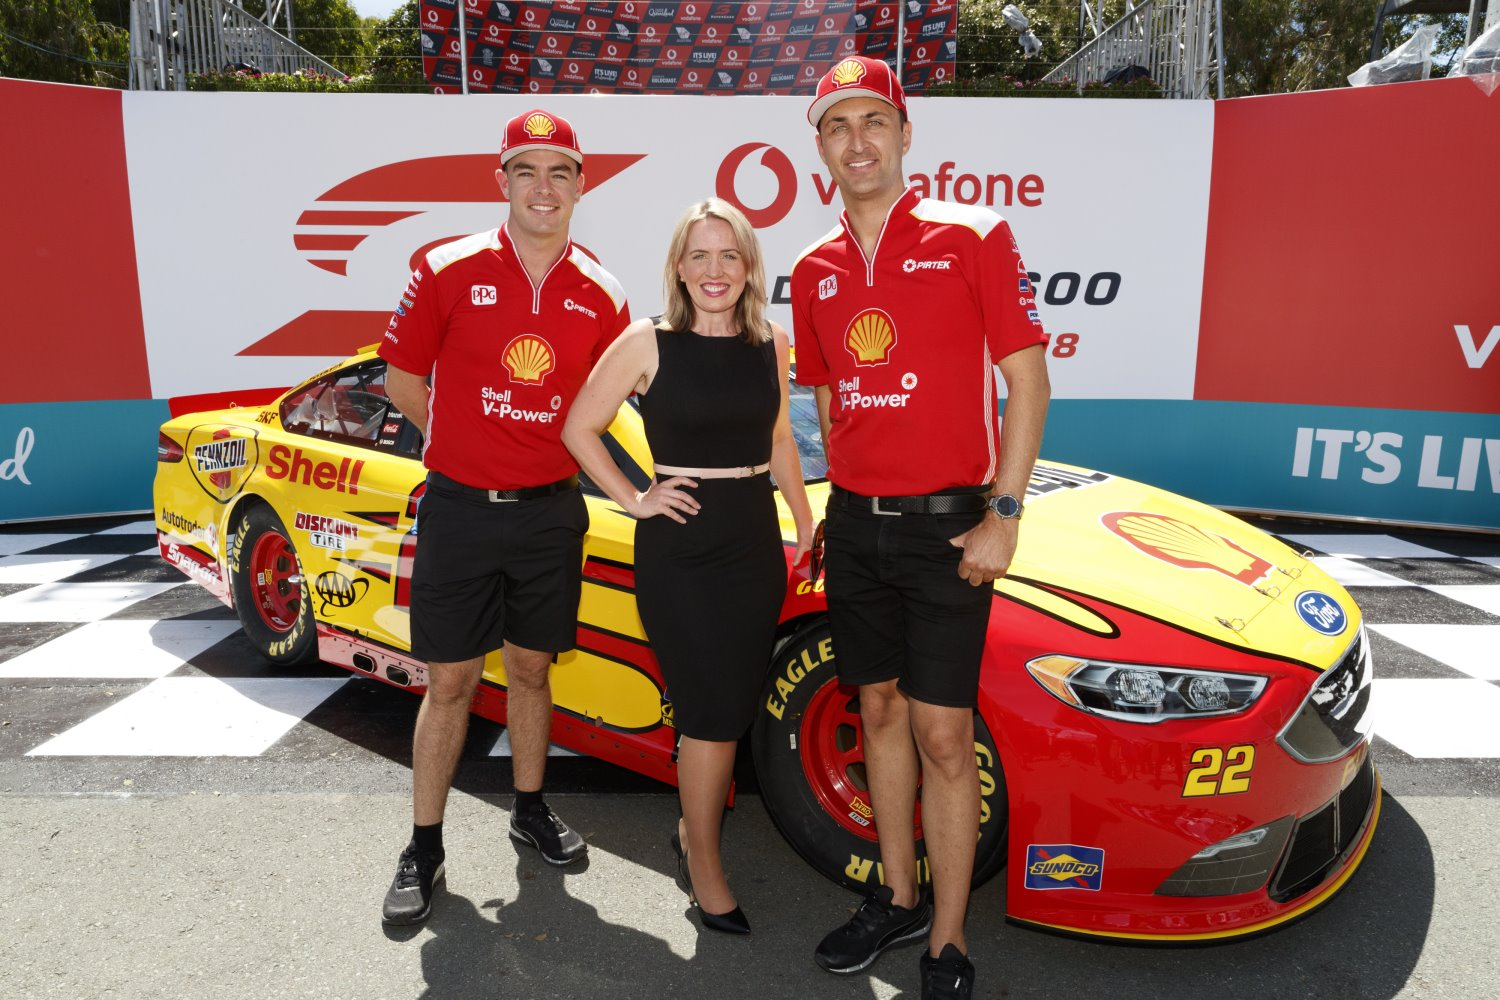 Roger Penske brought his Cup car to Surfers Paradise to promote NASCAR there. Note he did not bring his IndyCar.